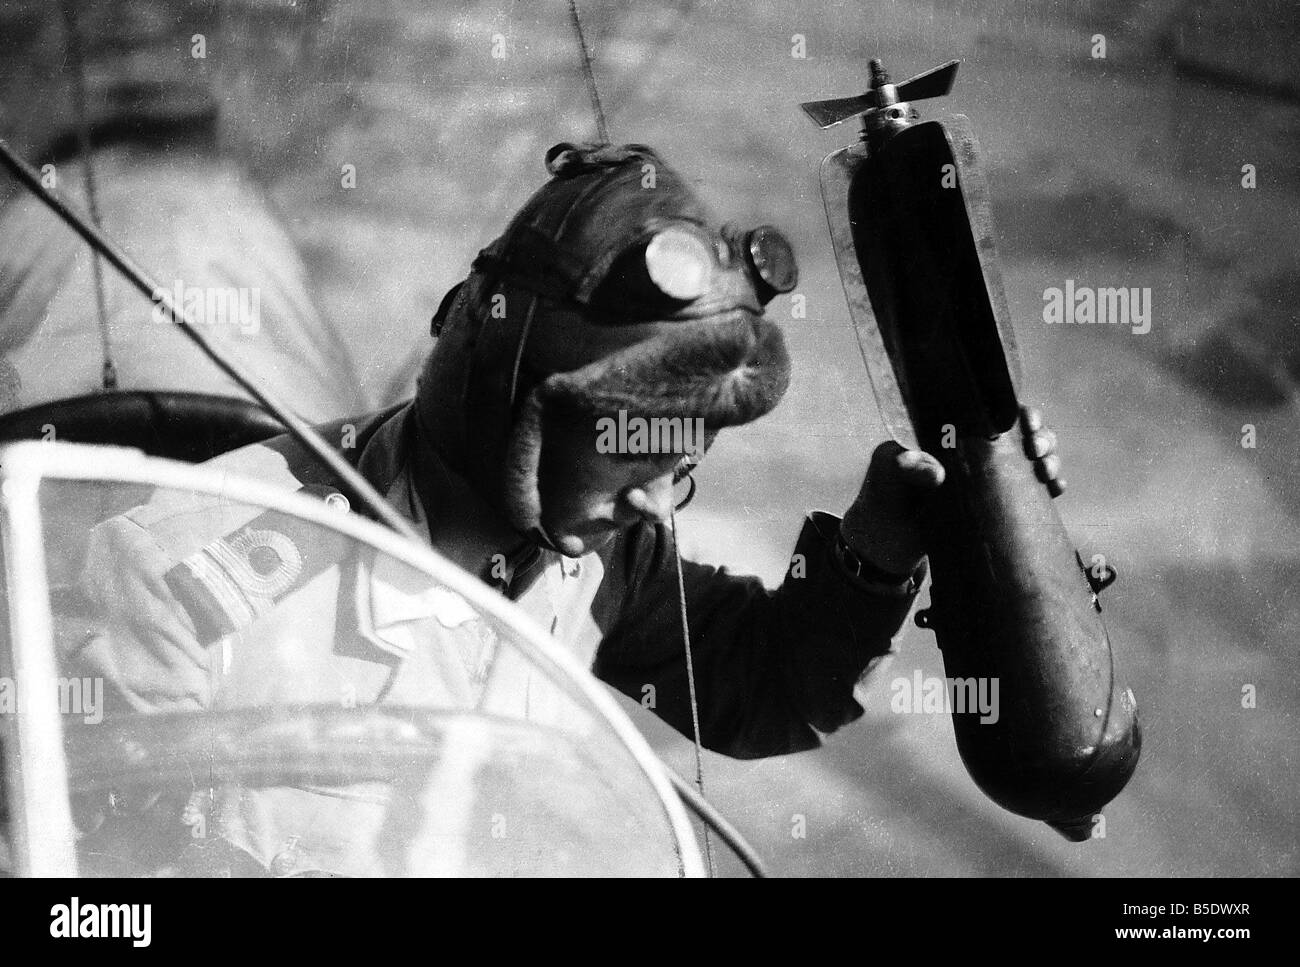 World War One A British airman holding a bomb in his hand looks out of his aircraft taking aim at his target 1917 - Stock Image